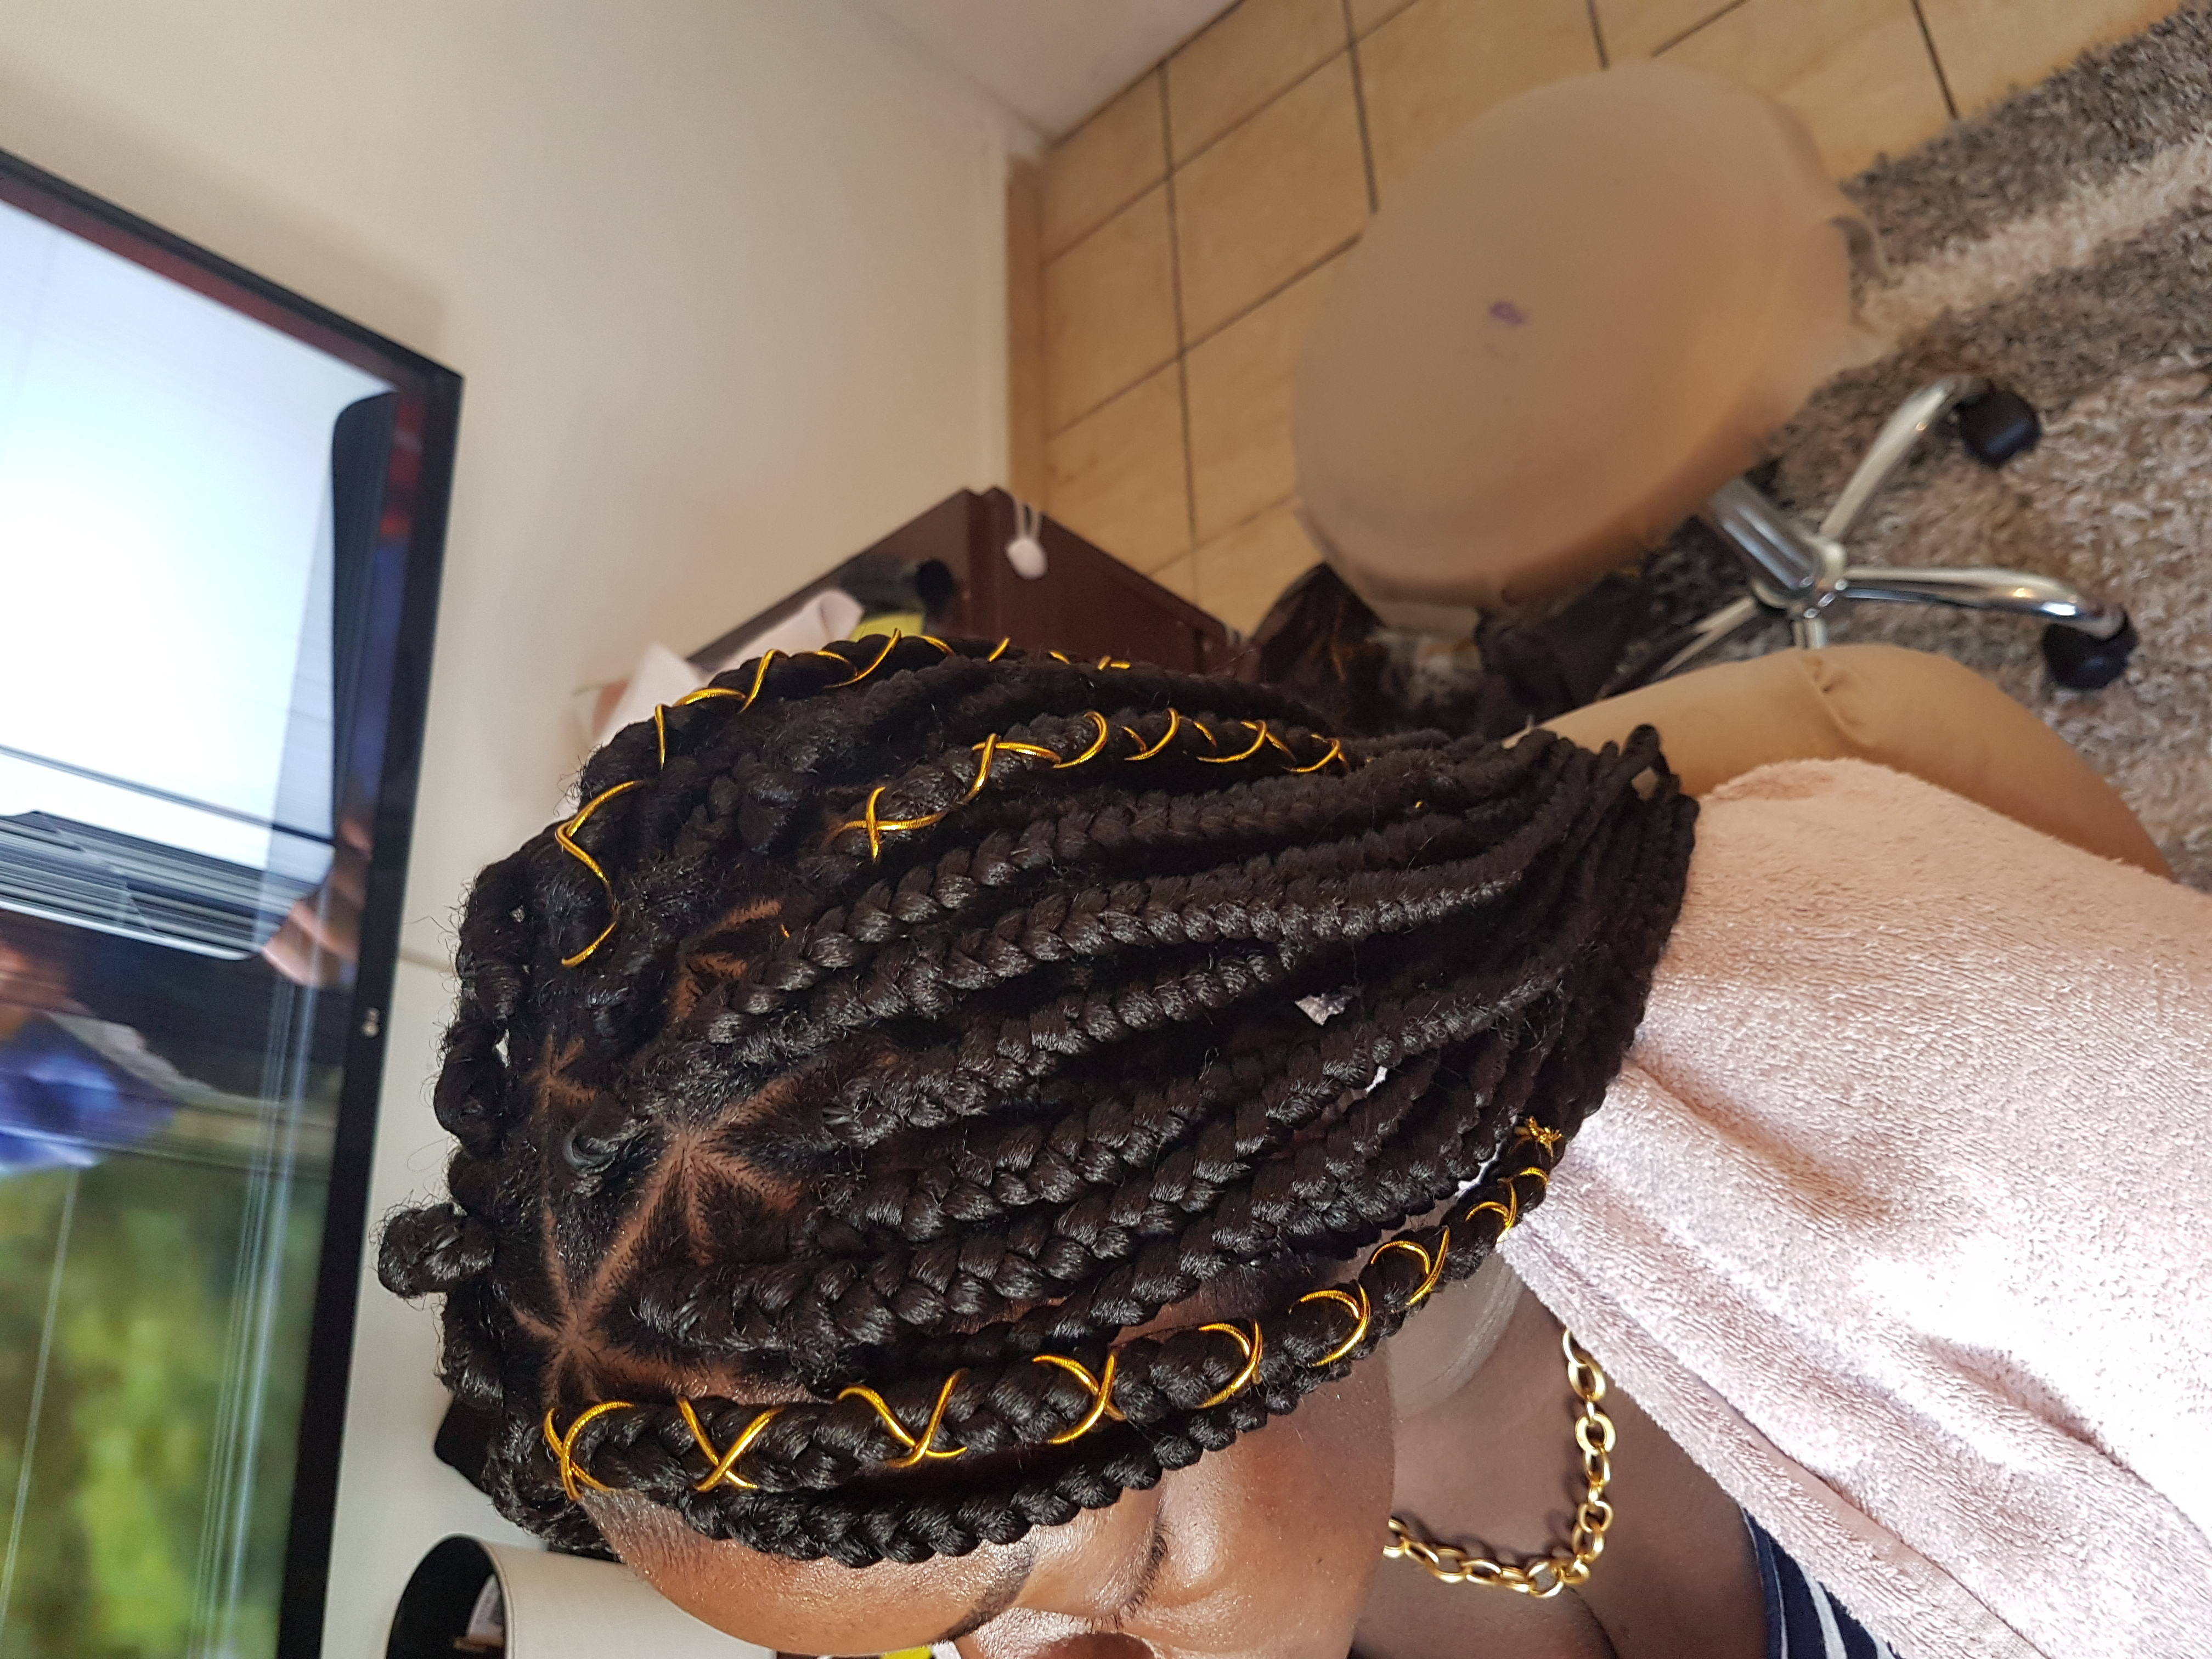 salon de coiffure afro tresse tresses box braids crochet braids vanilles tissages paris 75 77 78 91 92 93 94 95 FYRBPJNC